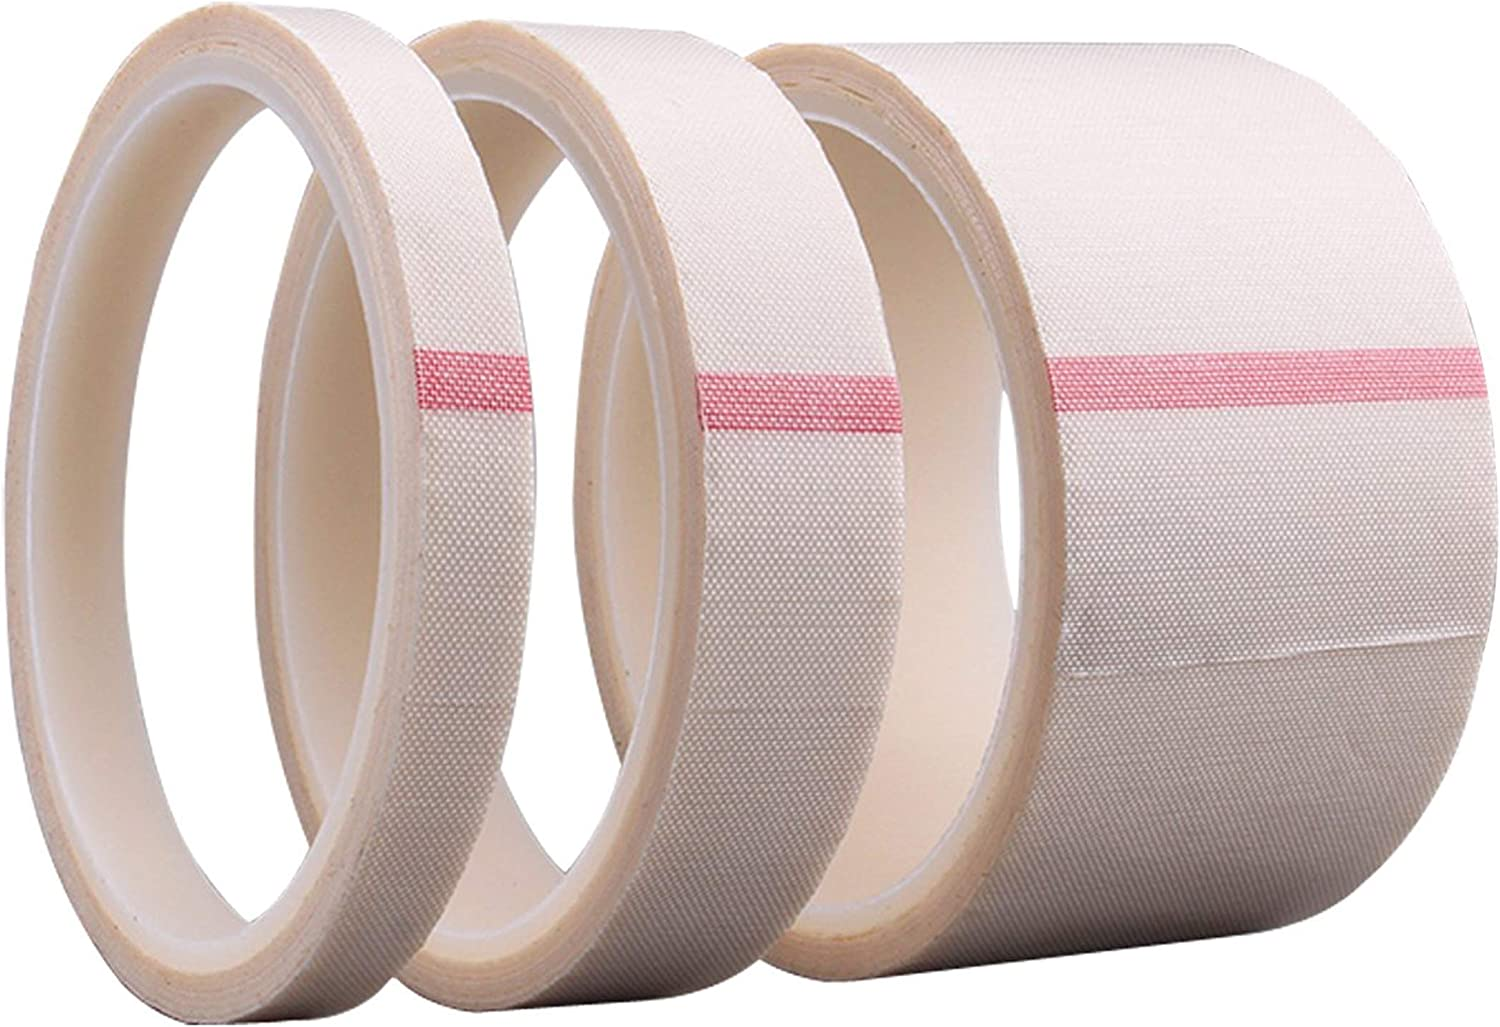 PTFE Coated Fiberglass Adhesive Teflon Tape,high Temperature Tape for Vacuum, Hand and Impulse Sealers;Drying Mechanical Conveyor Belt, Thickness 0.13mm,Length 10m (20mm X 11yards X 0.13mm(White))